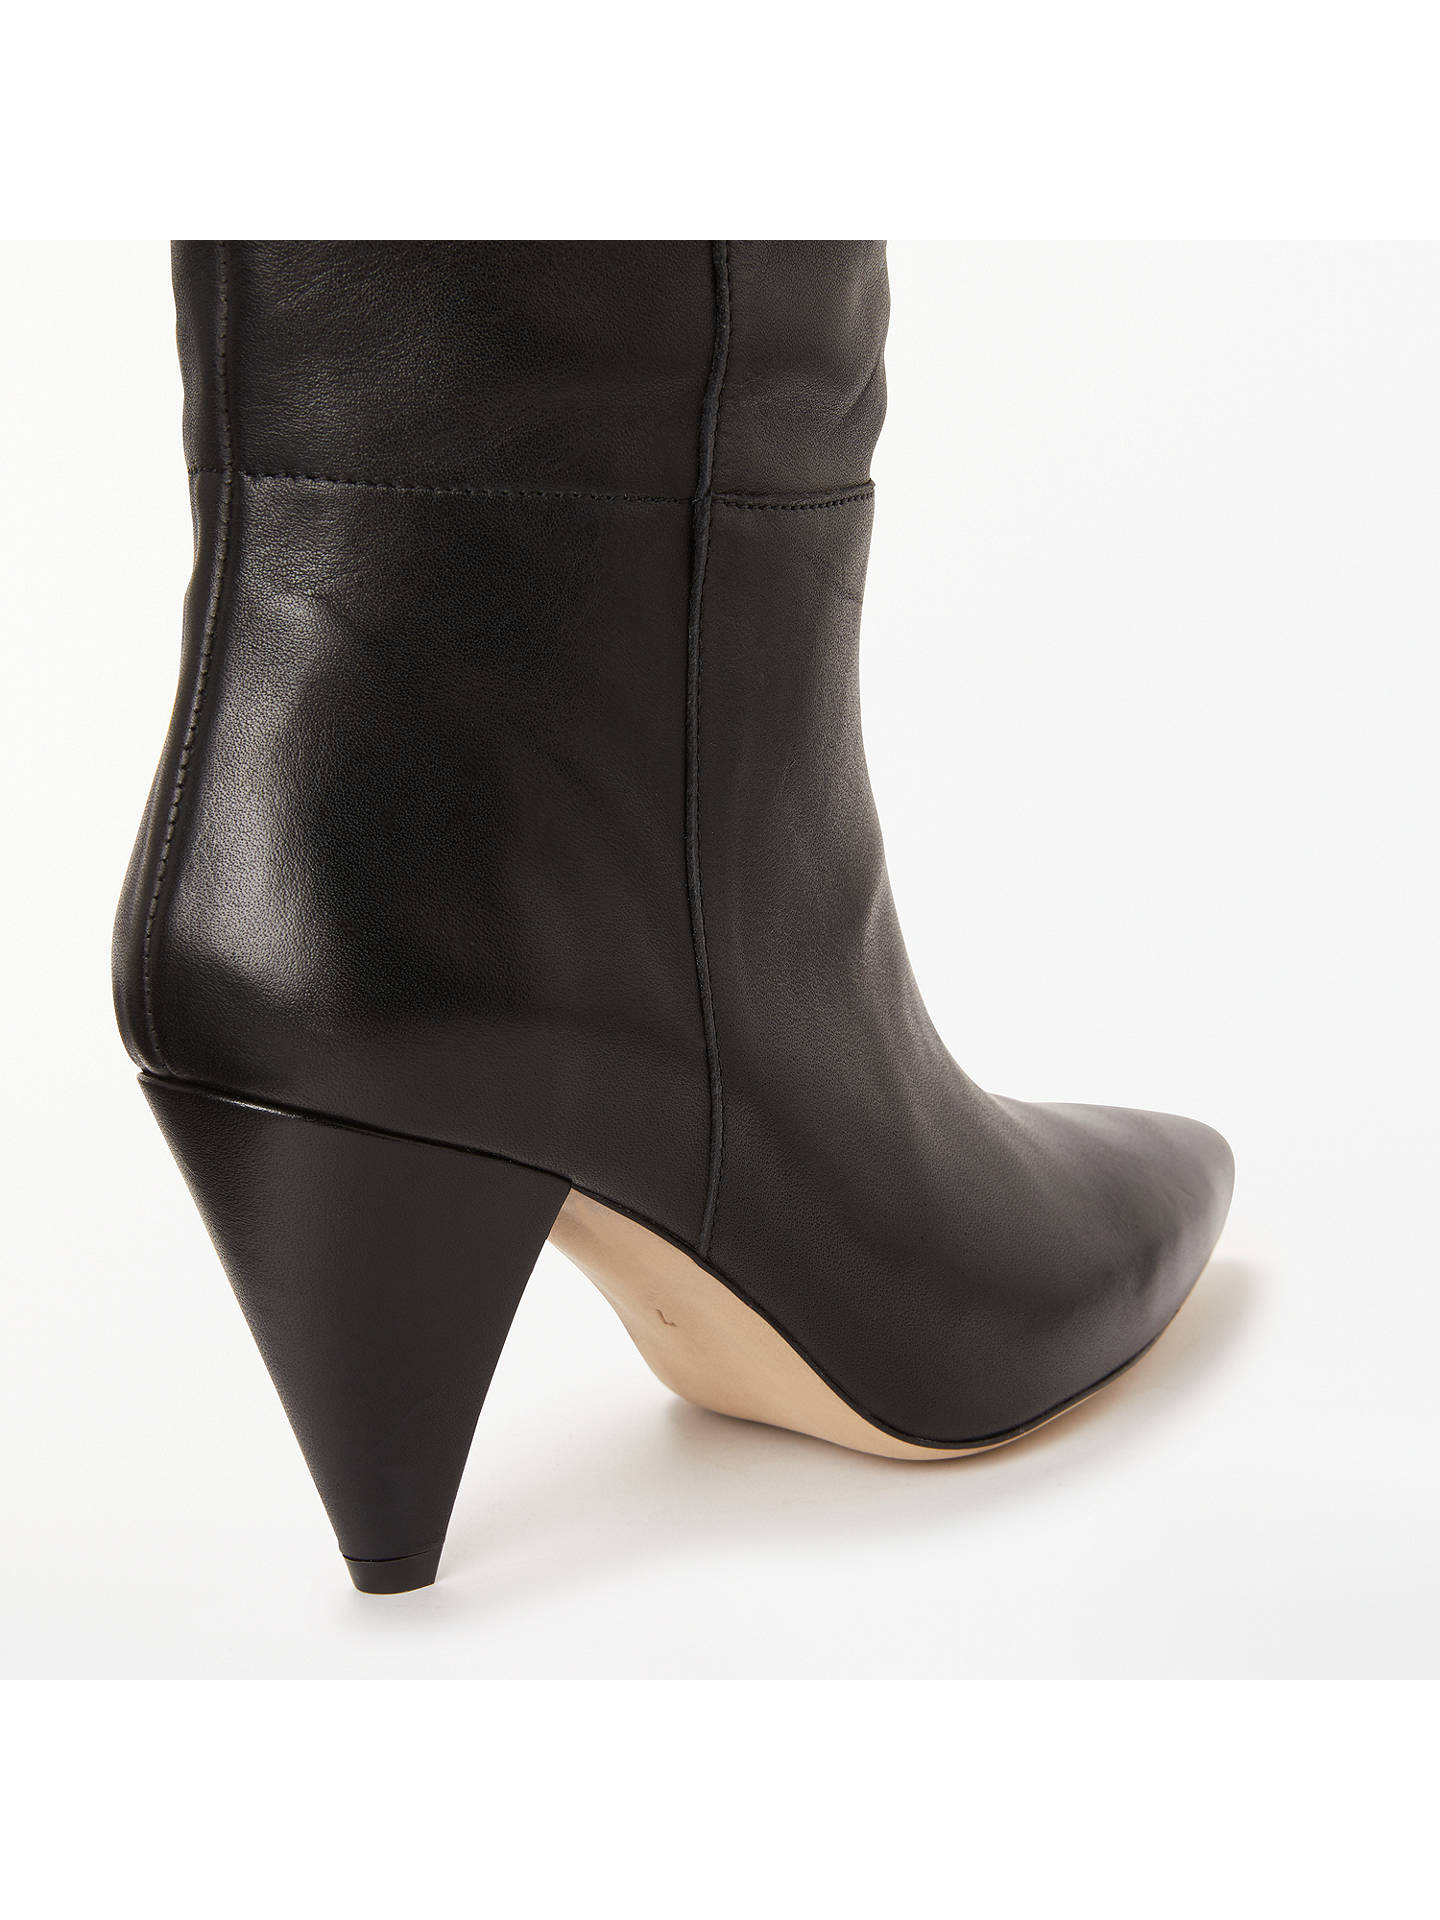 BuyKin Sibylla Leather Cone Heel Knee High Boots, Black, 6 Online at johnlewis.com